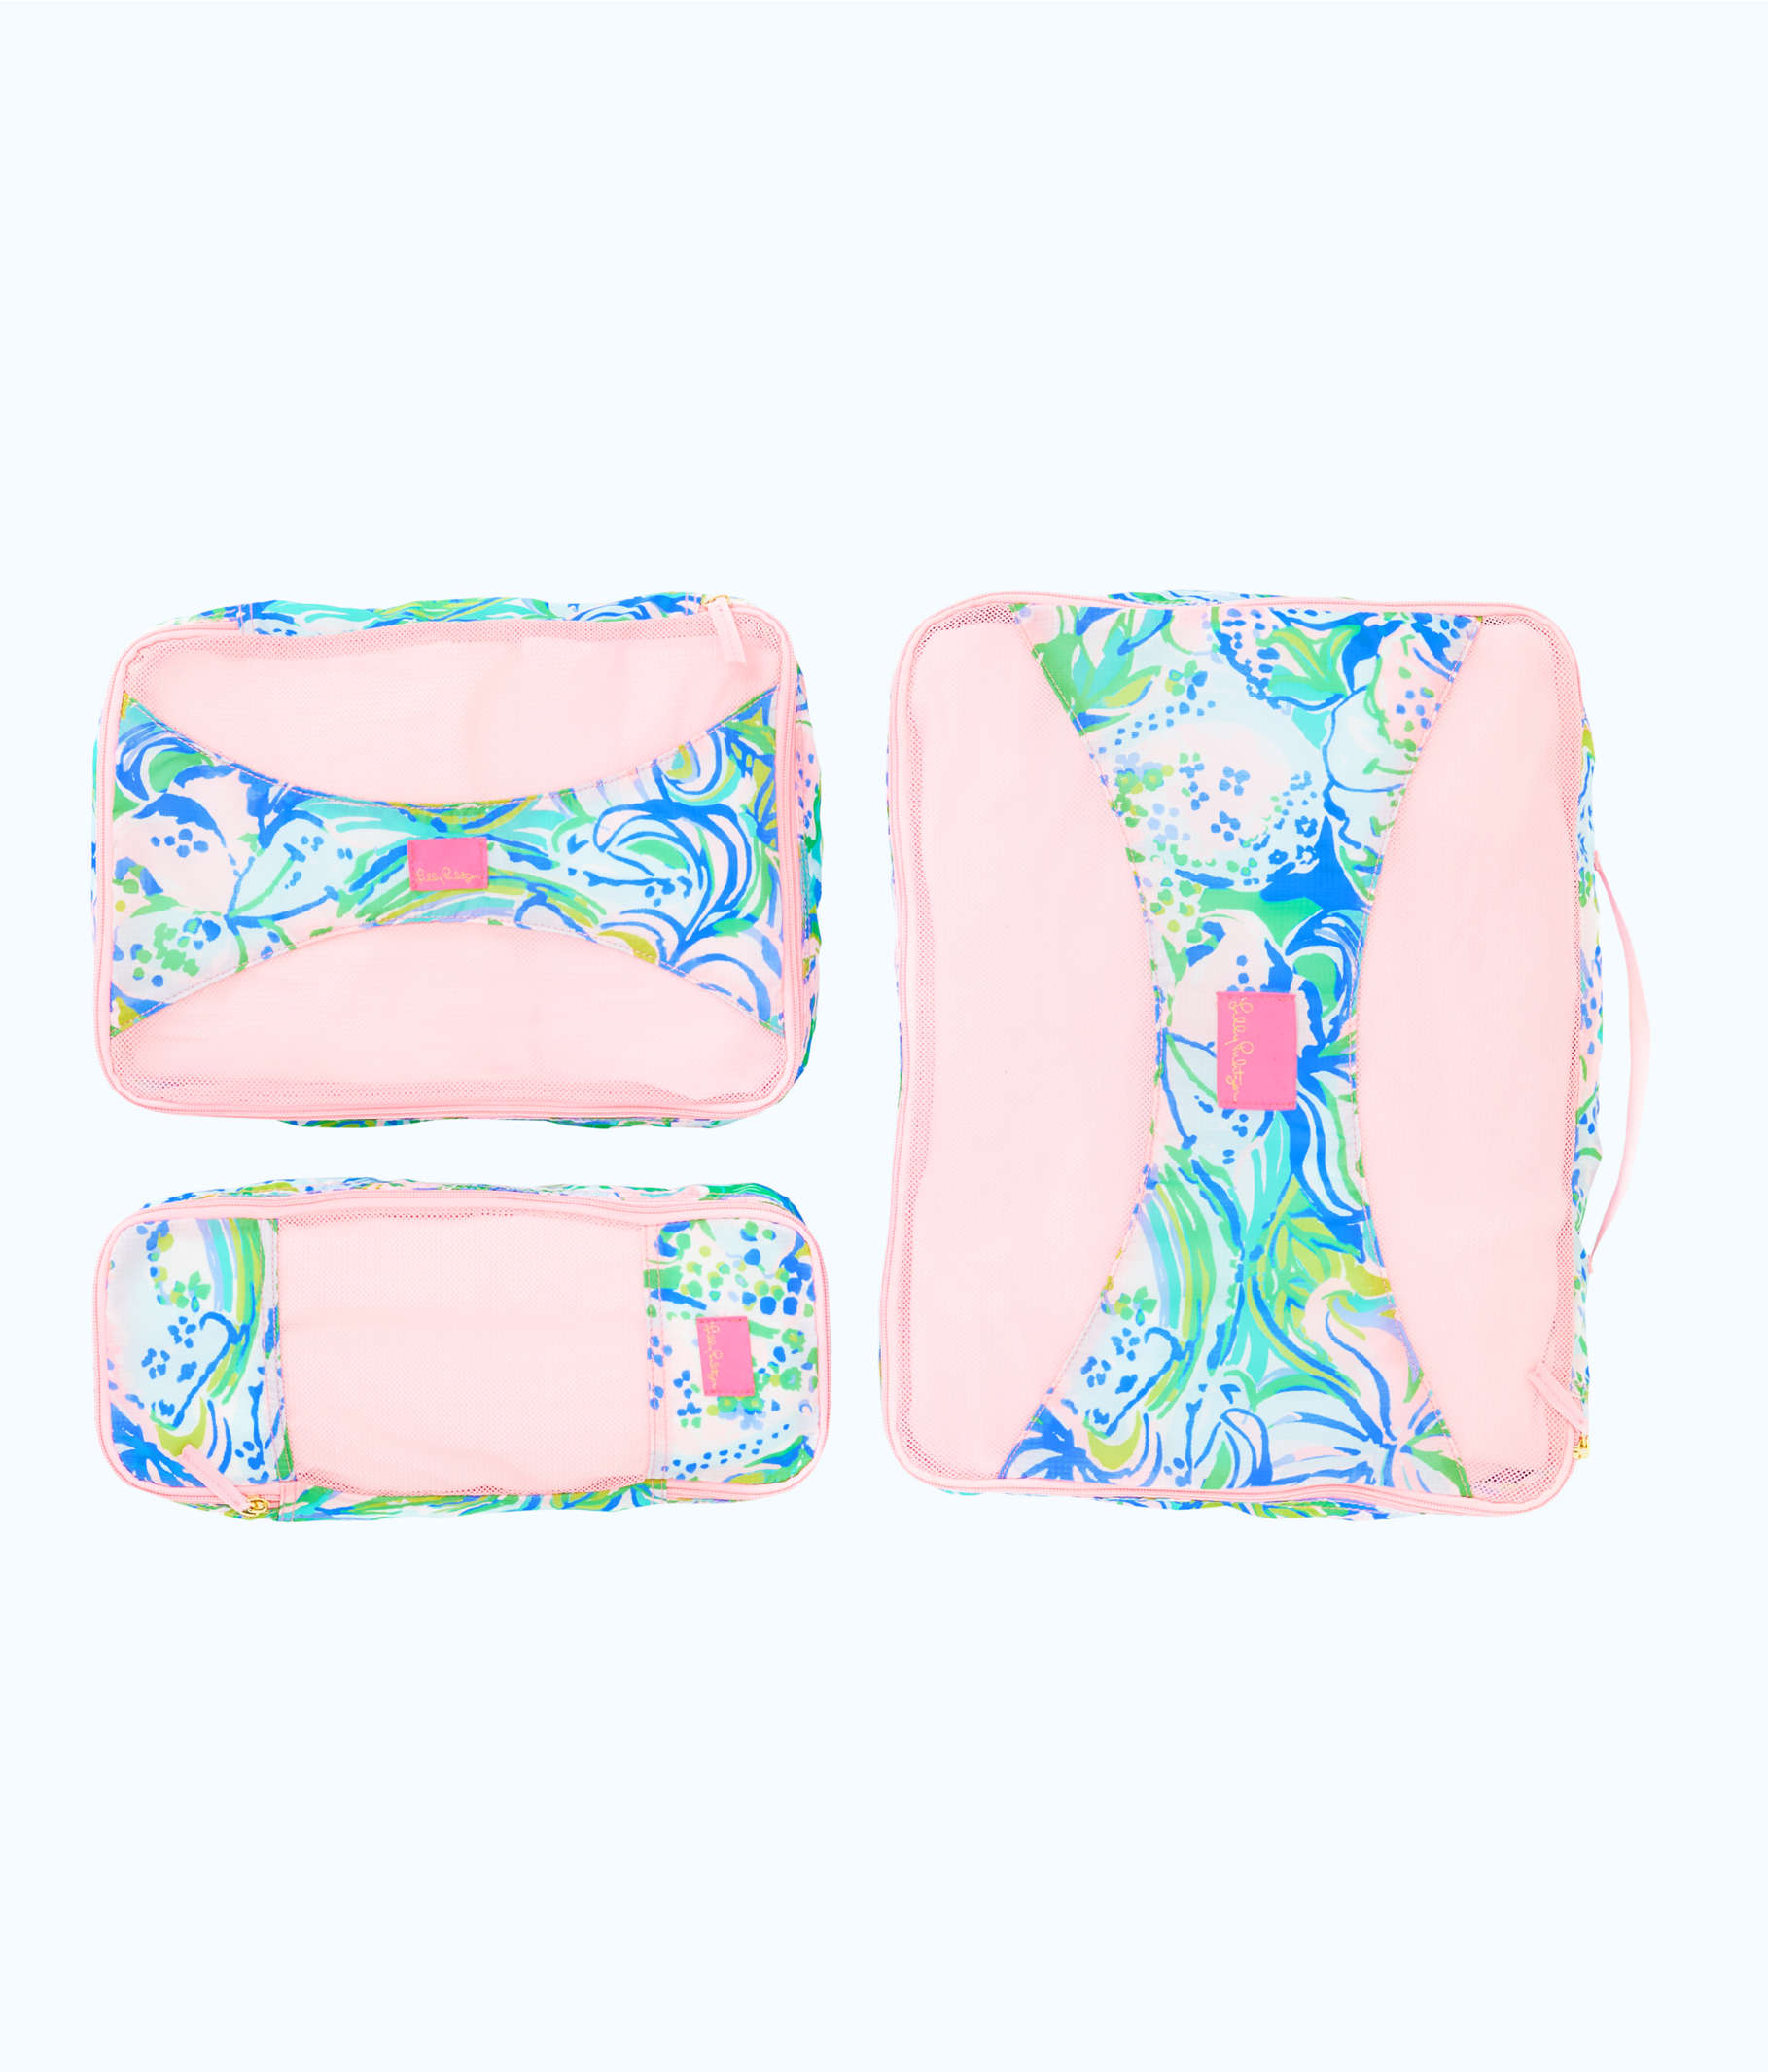 Lilly Pulitzer packing cubes